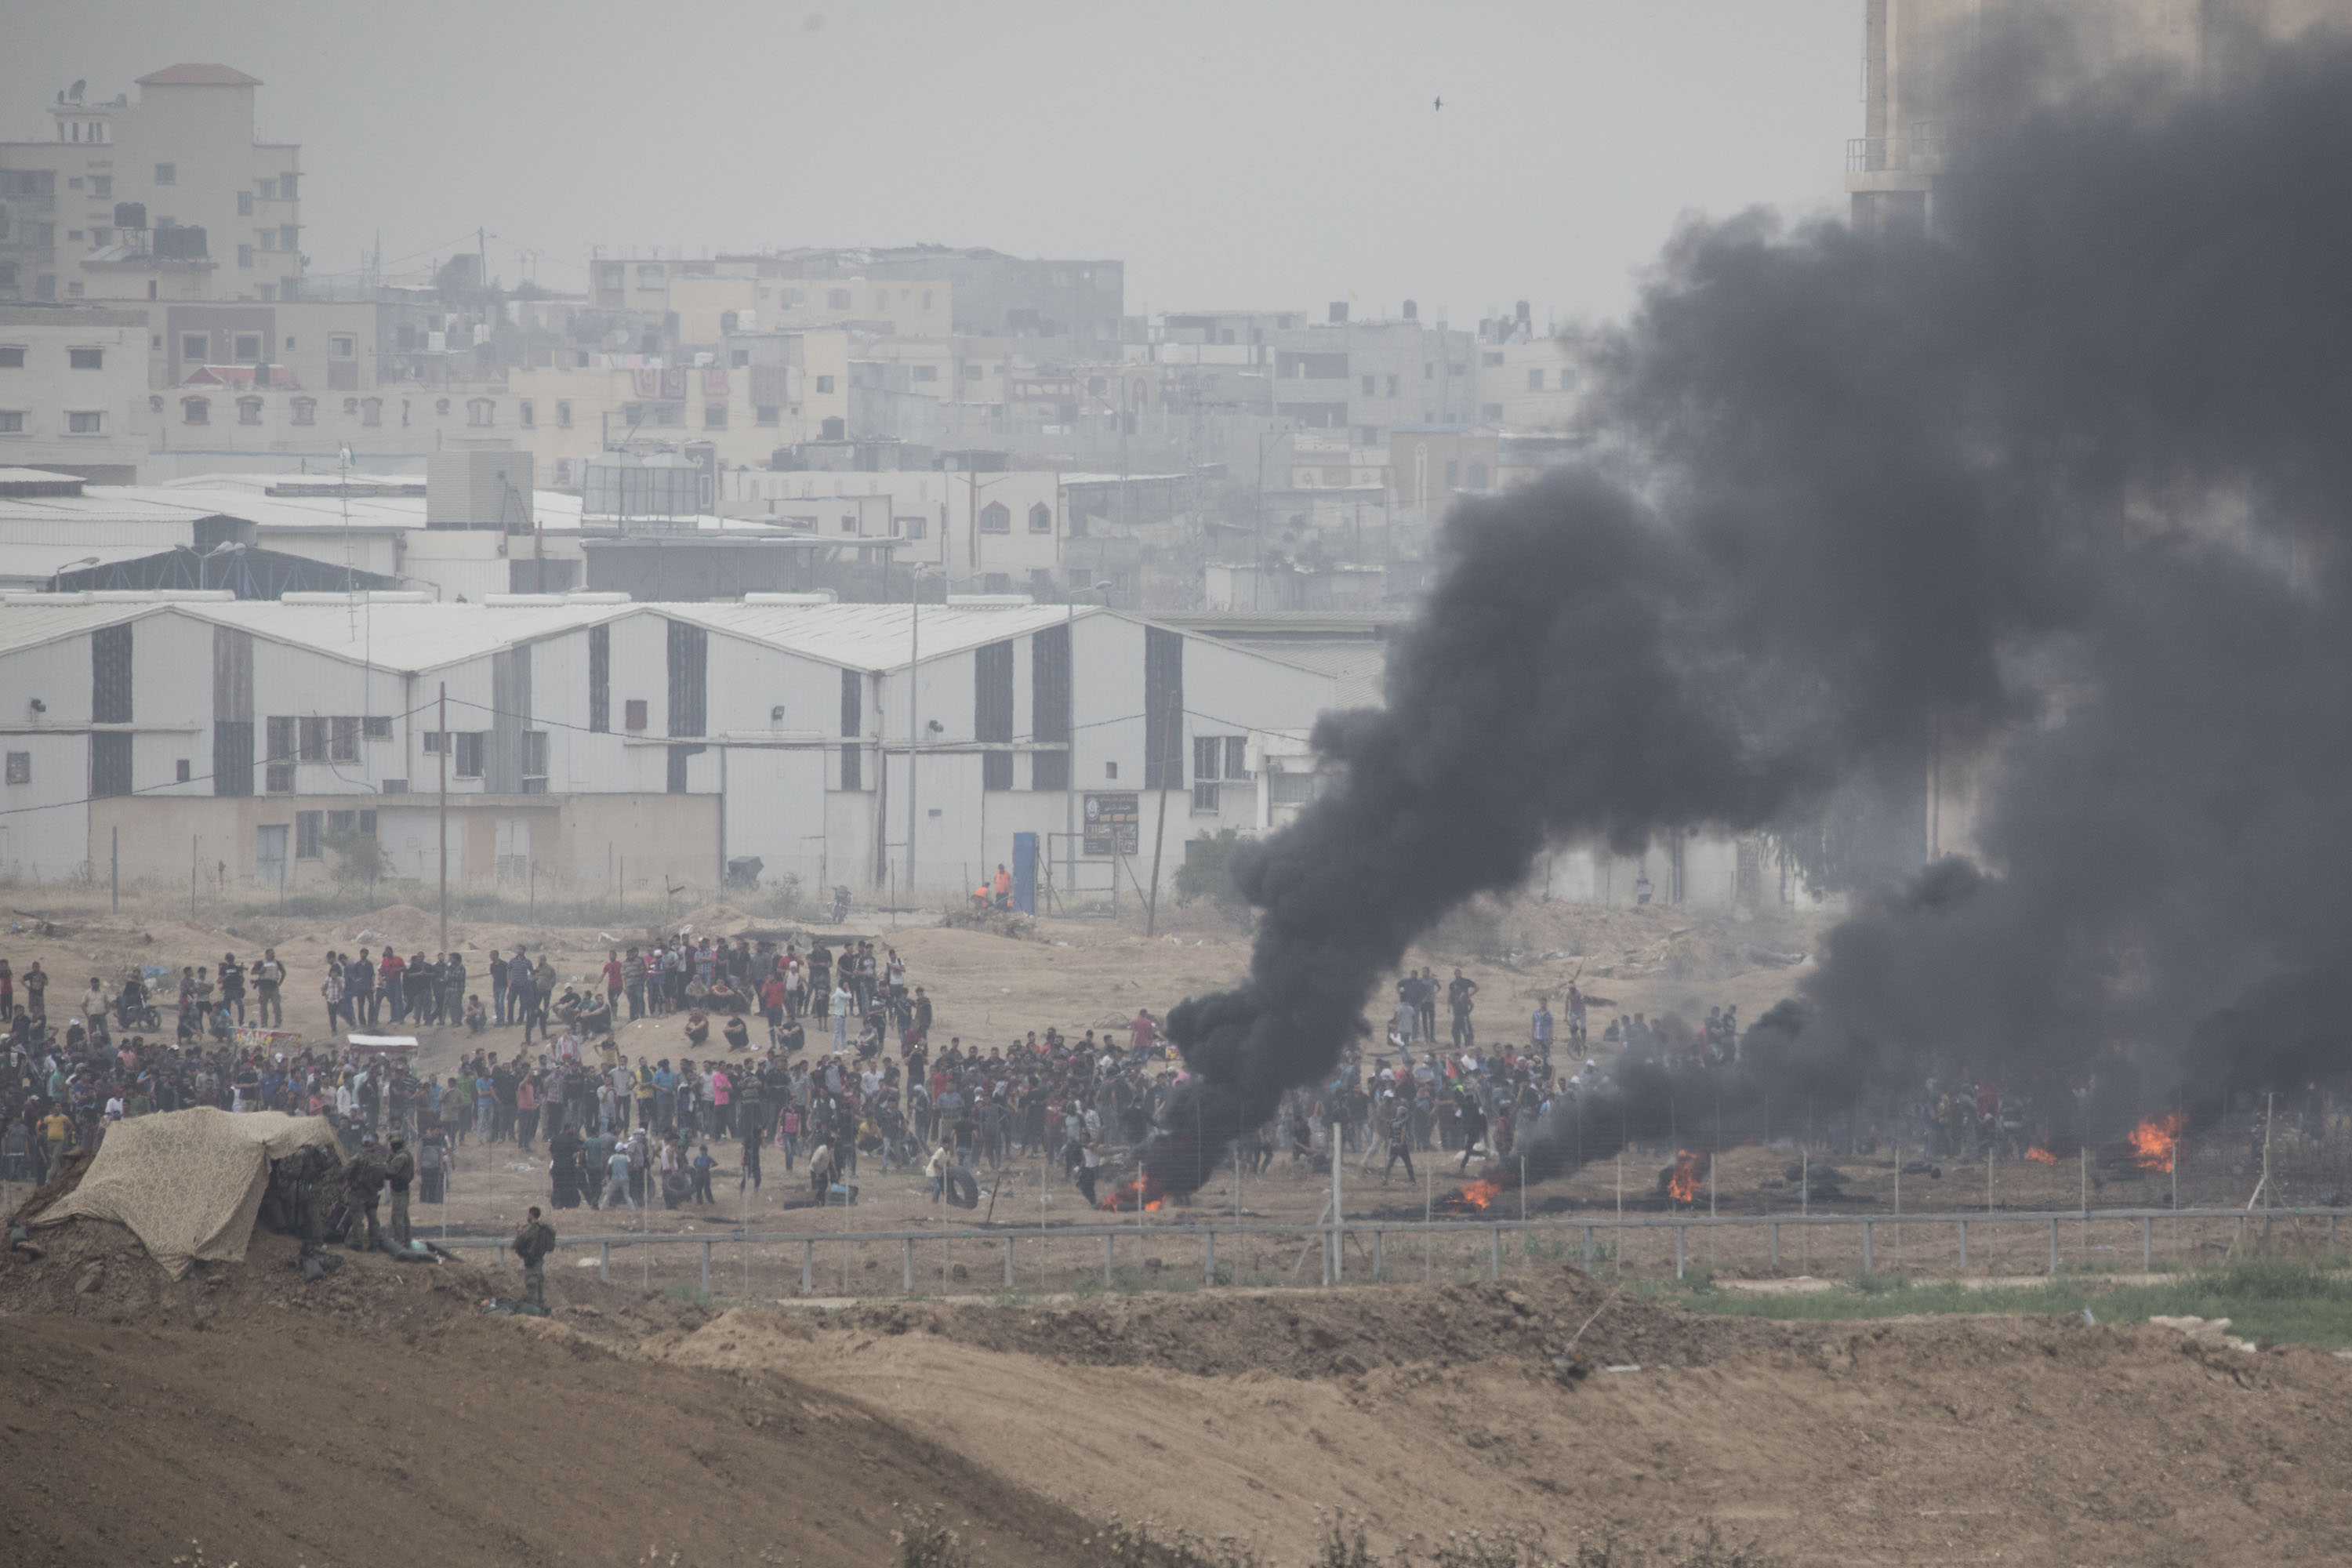 Smoke billows from the Gaza side of the Gaza-Israel border during the Great Return March demonstrations, May 4, 2018. (Oren Ziv/Activestills.org)